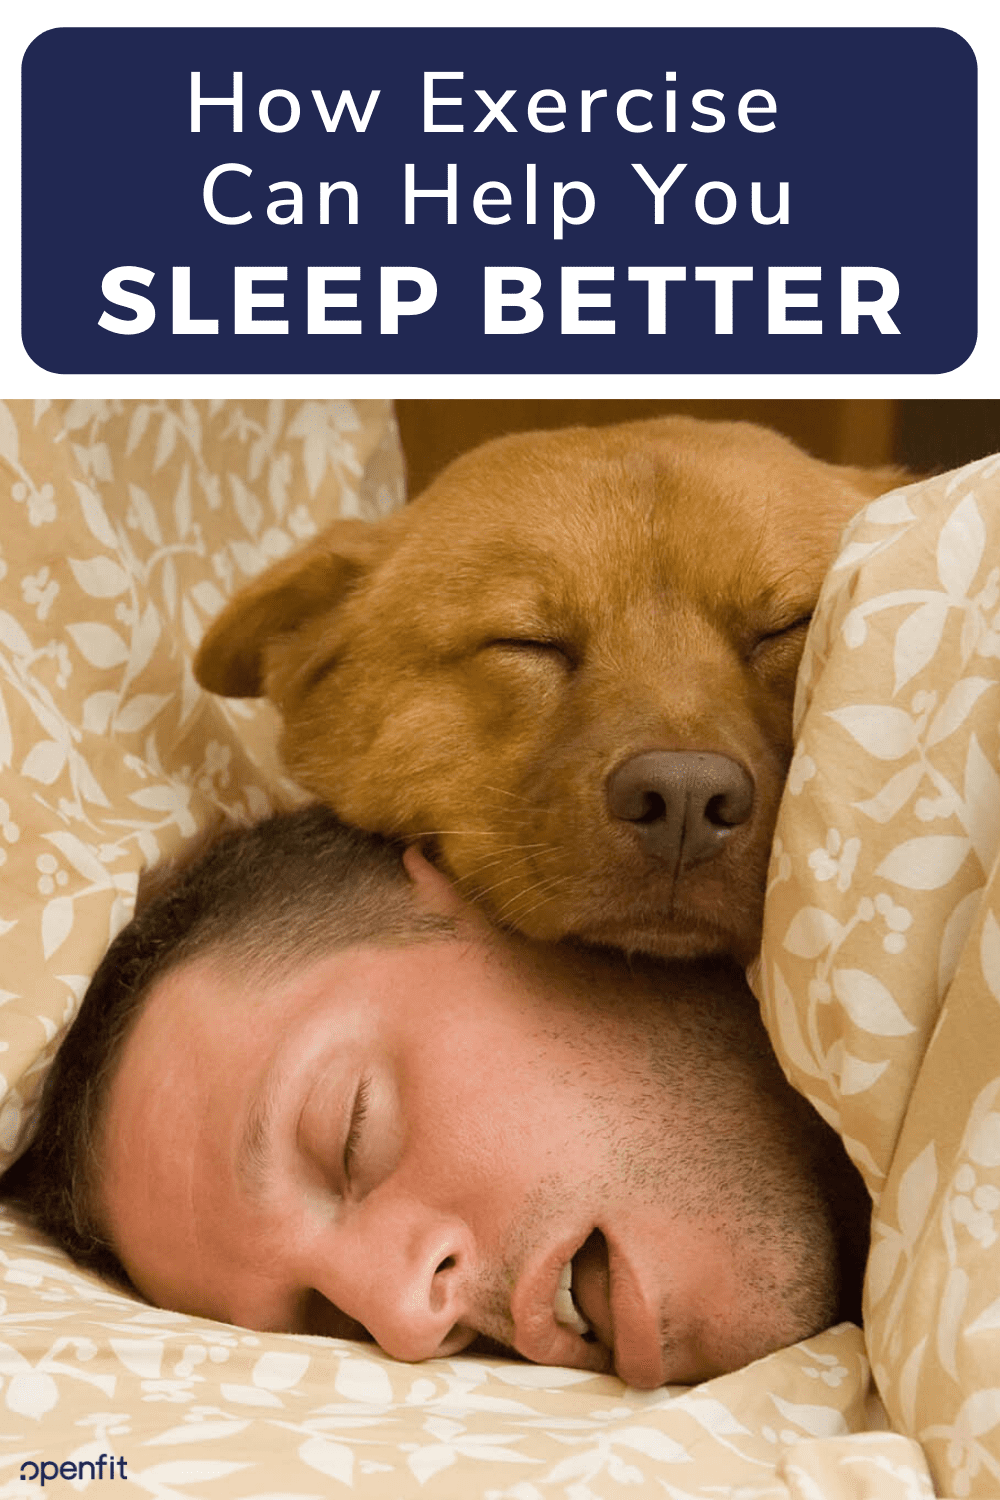 sleep better with exercise pin image